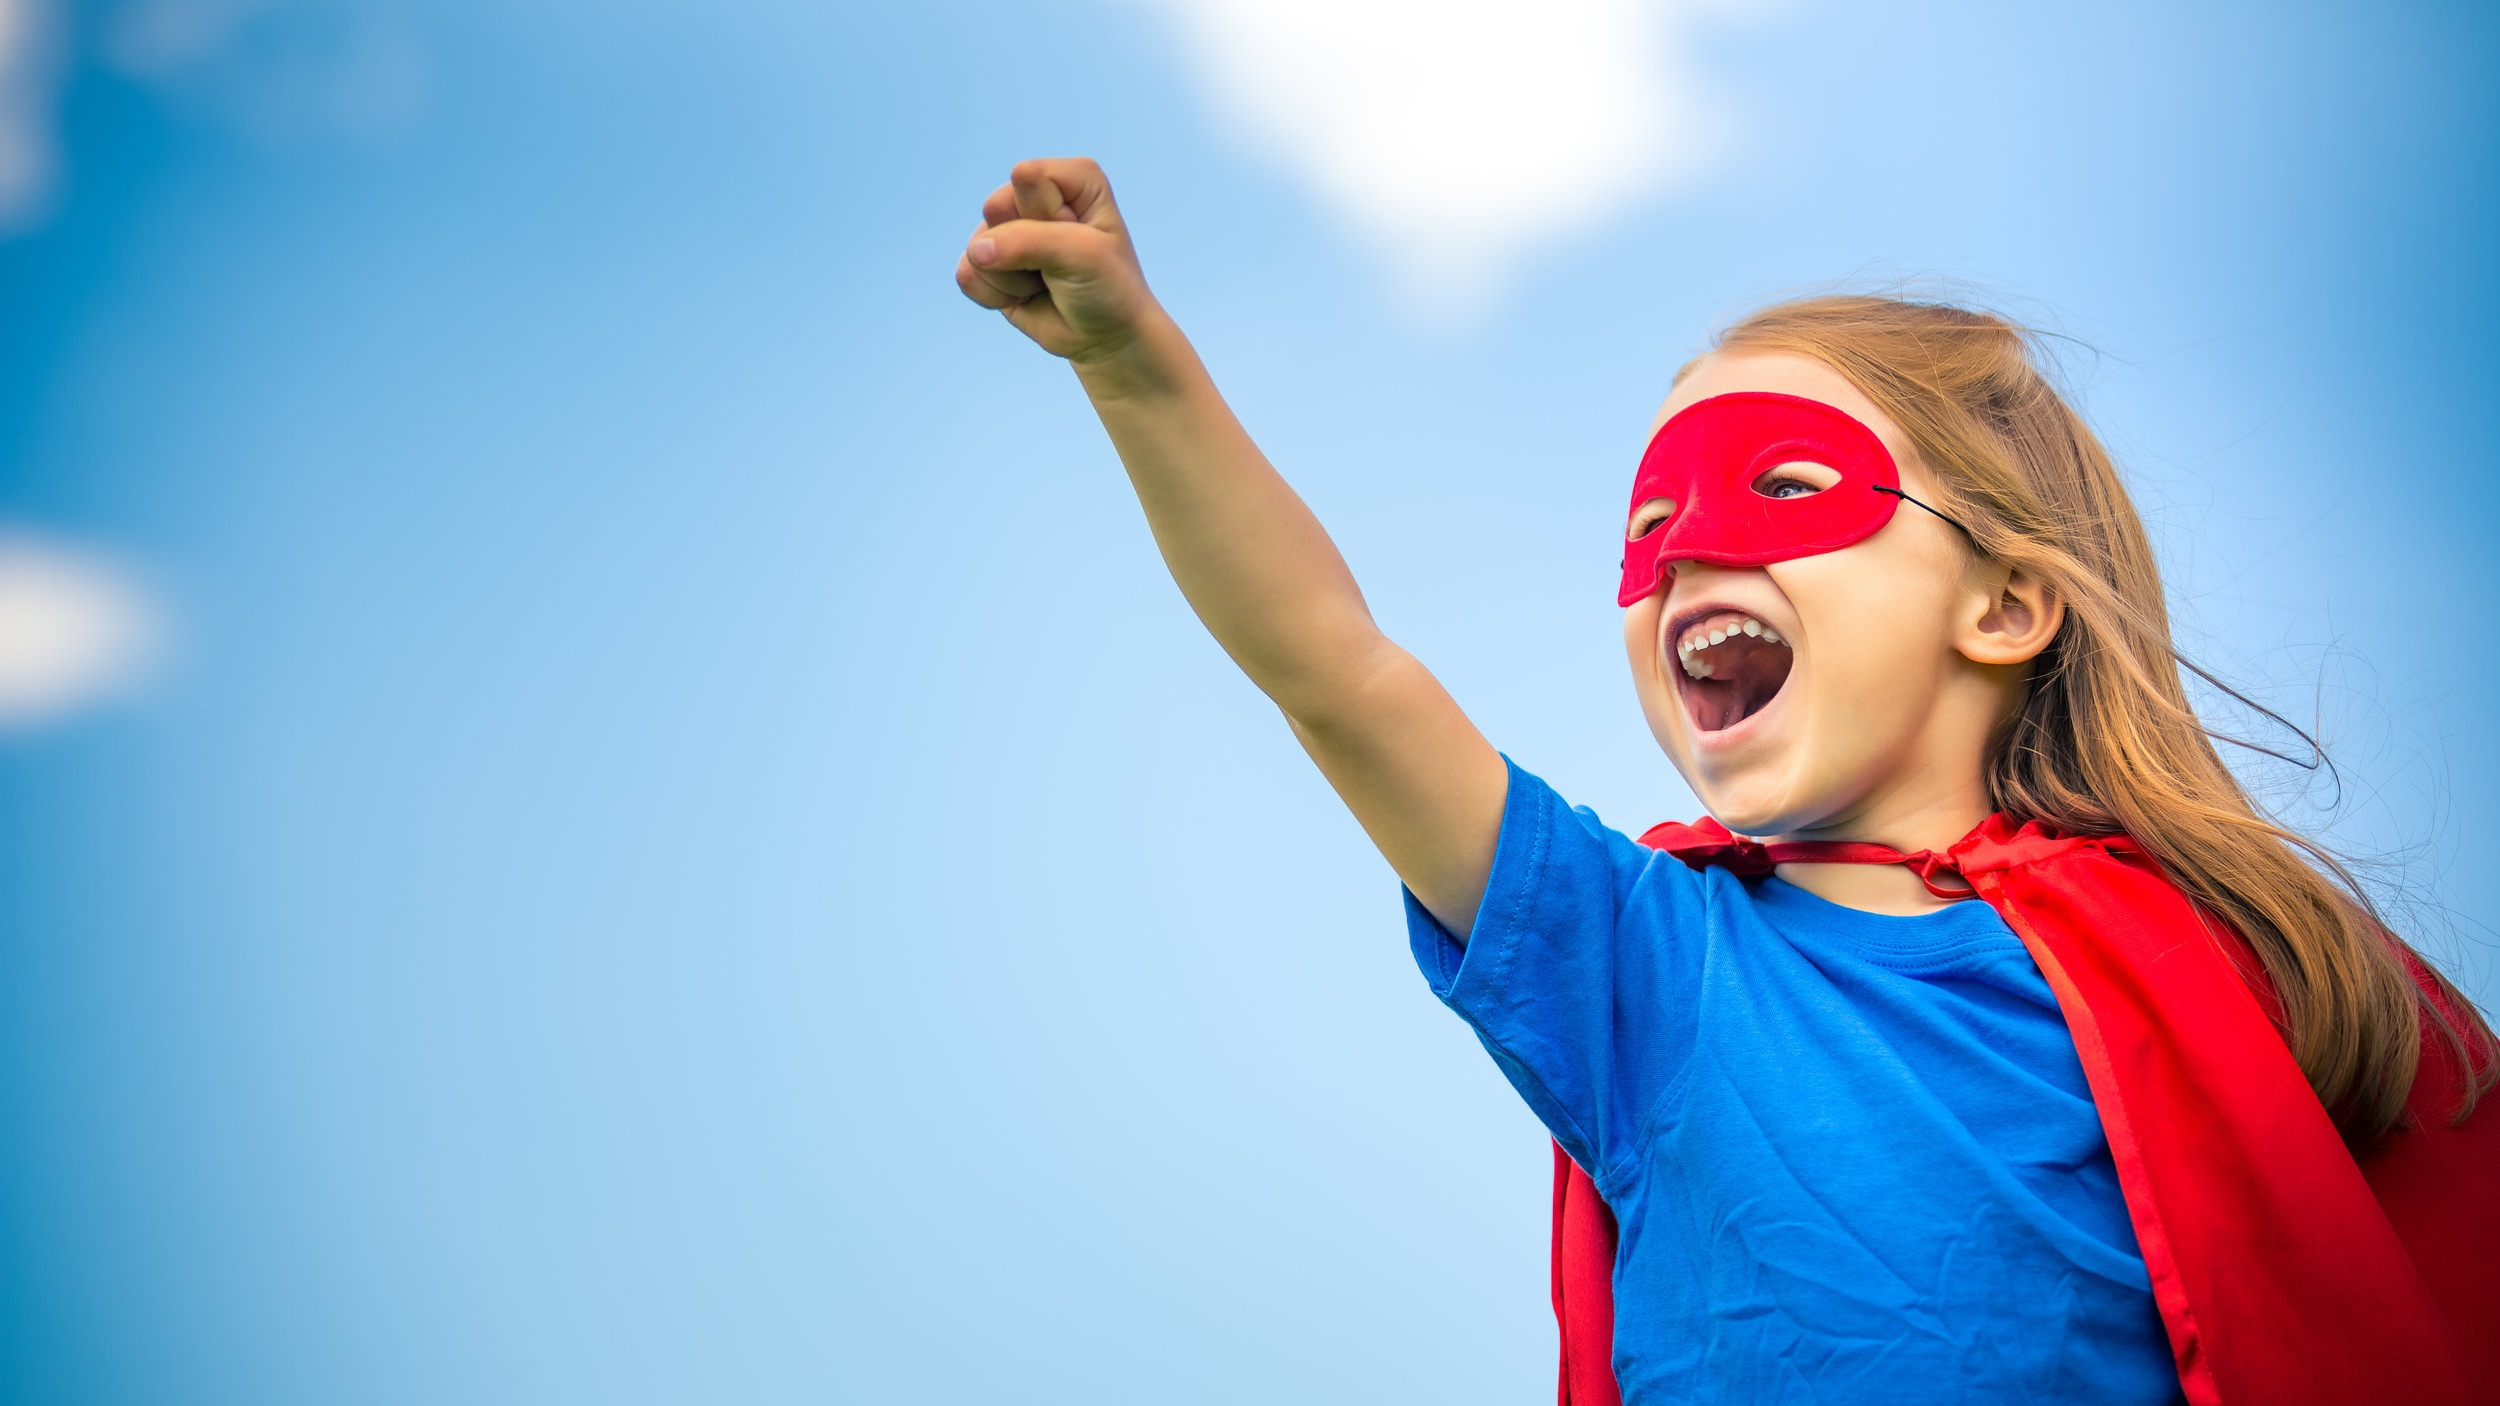 JULY 29 - AUG 2 - SUPER HERO WEEKHALF DAY CAMPPre-K & Kids Camps